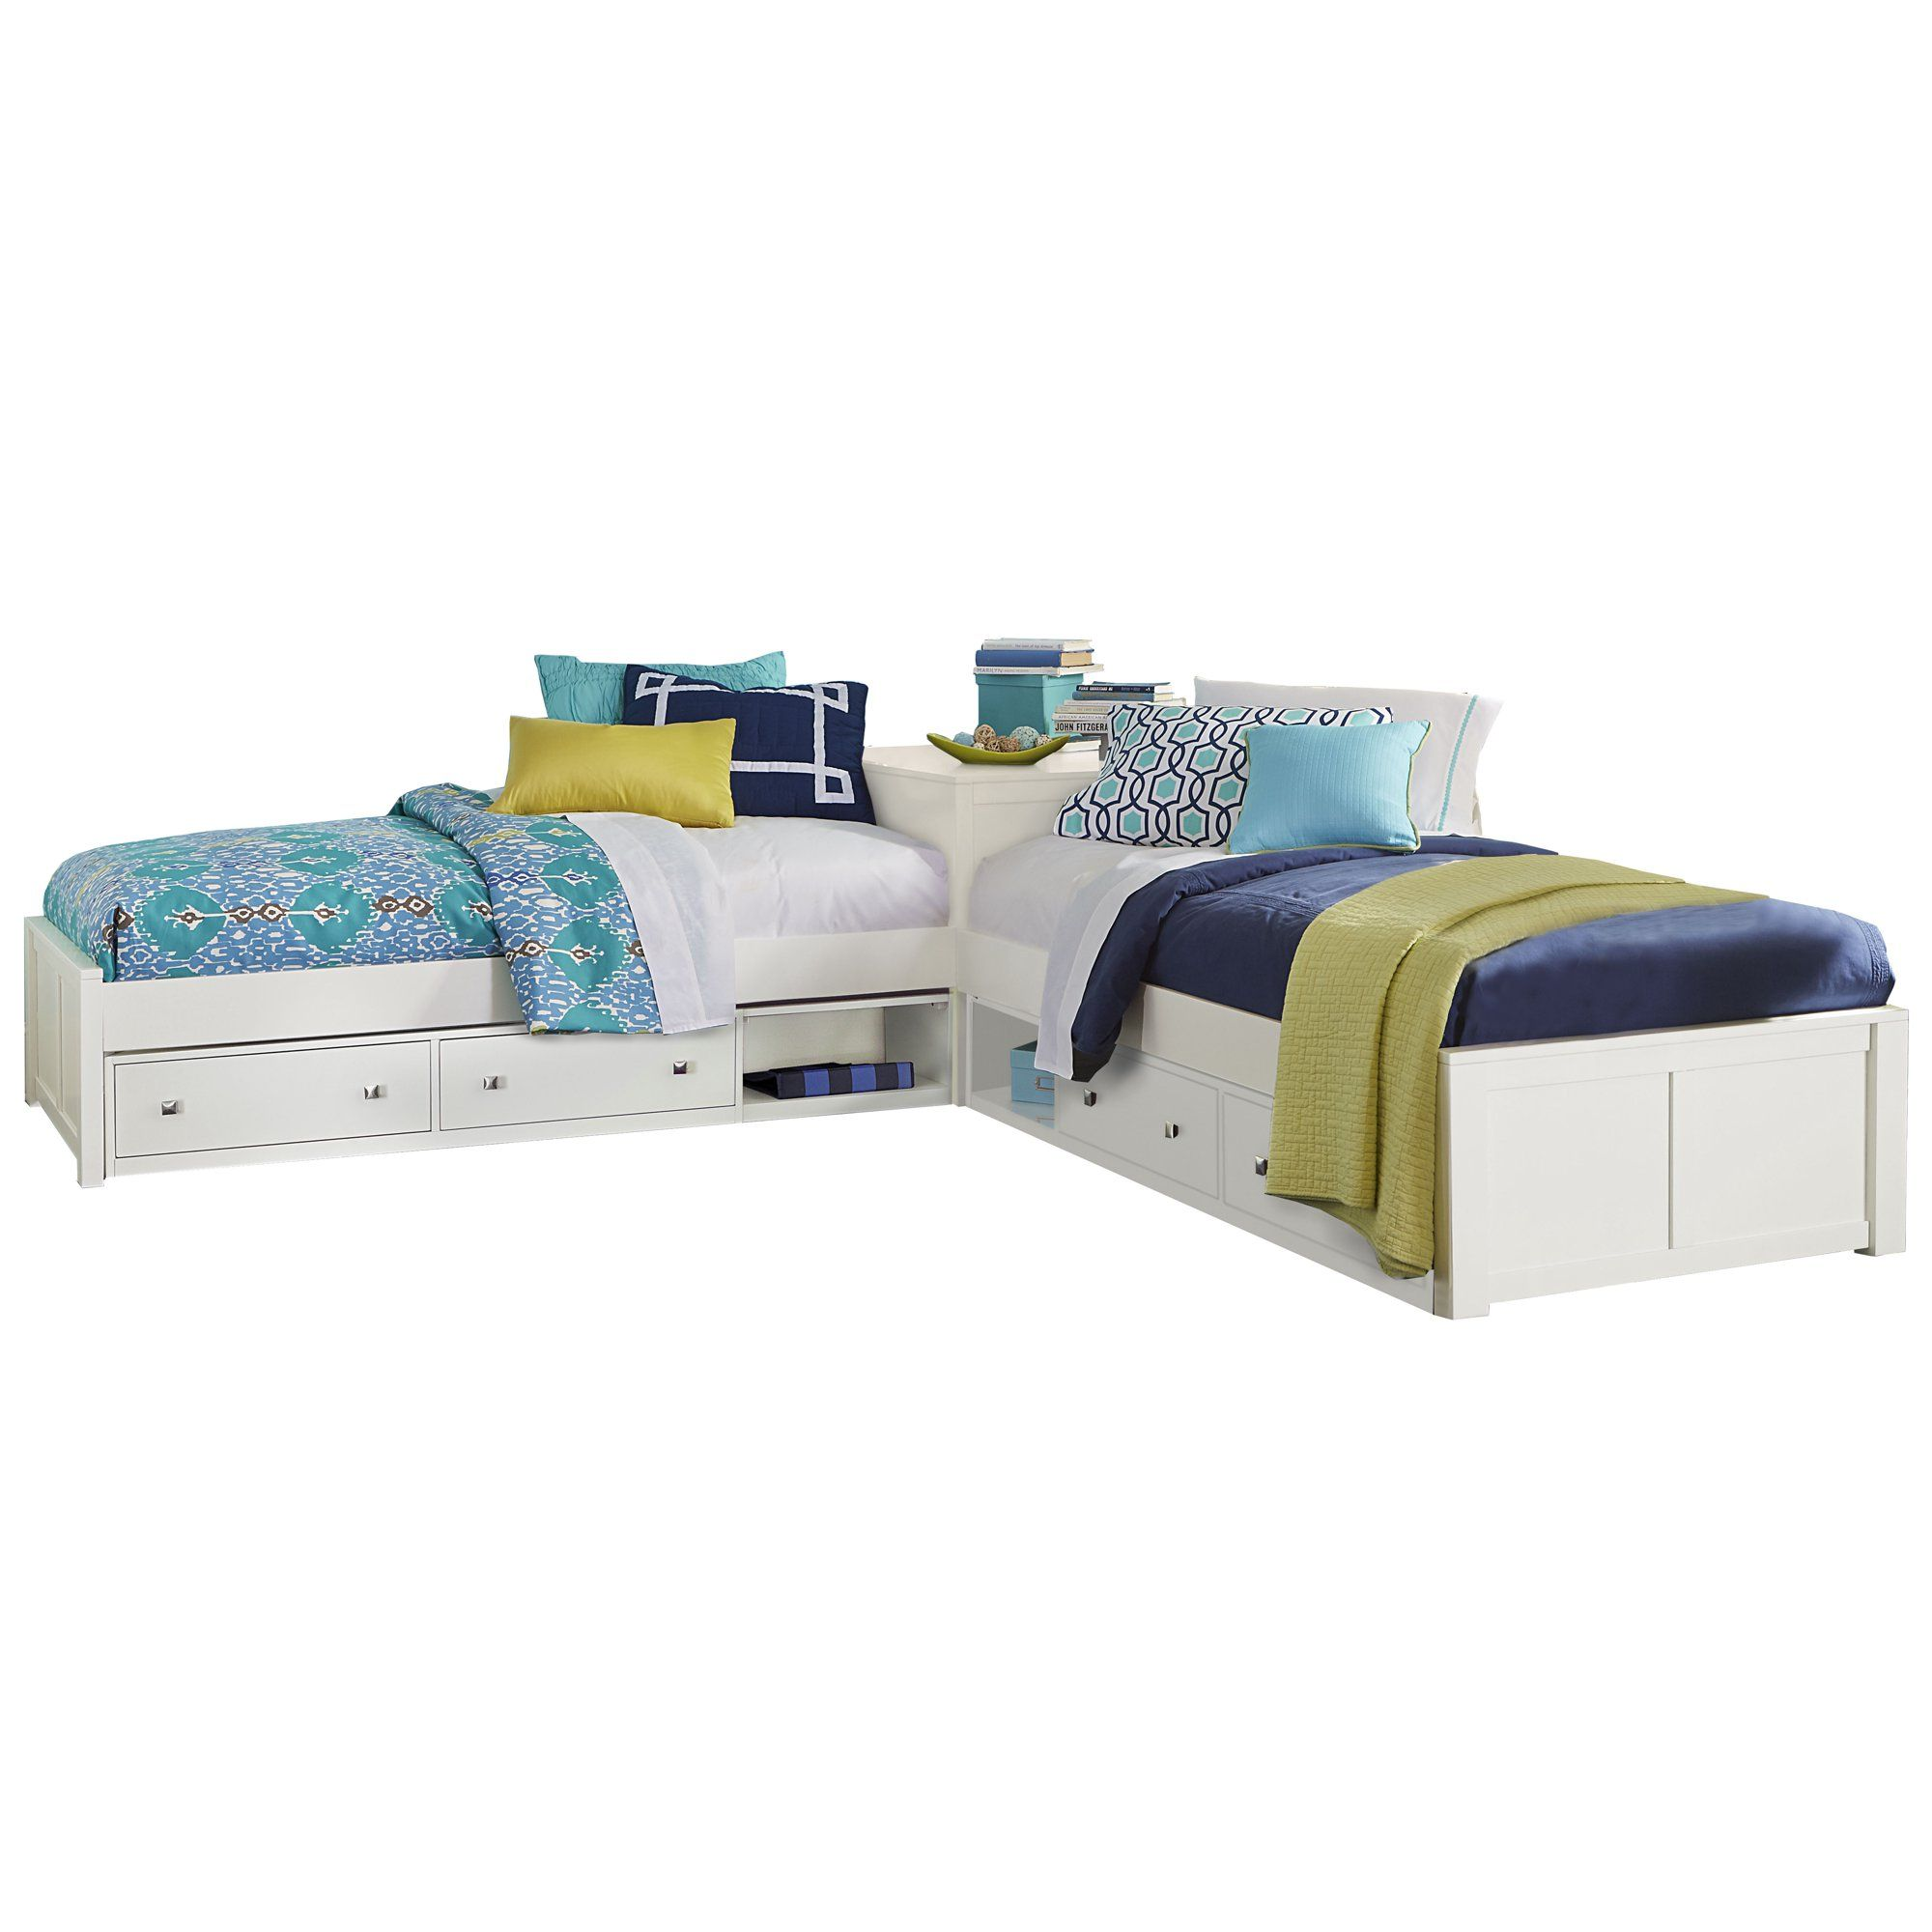 Pulse L Shaped Bed With Double Storage White Walmart Com L Shape Bed Two Twin Beds L Shaped Twin Beds